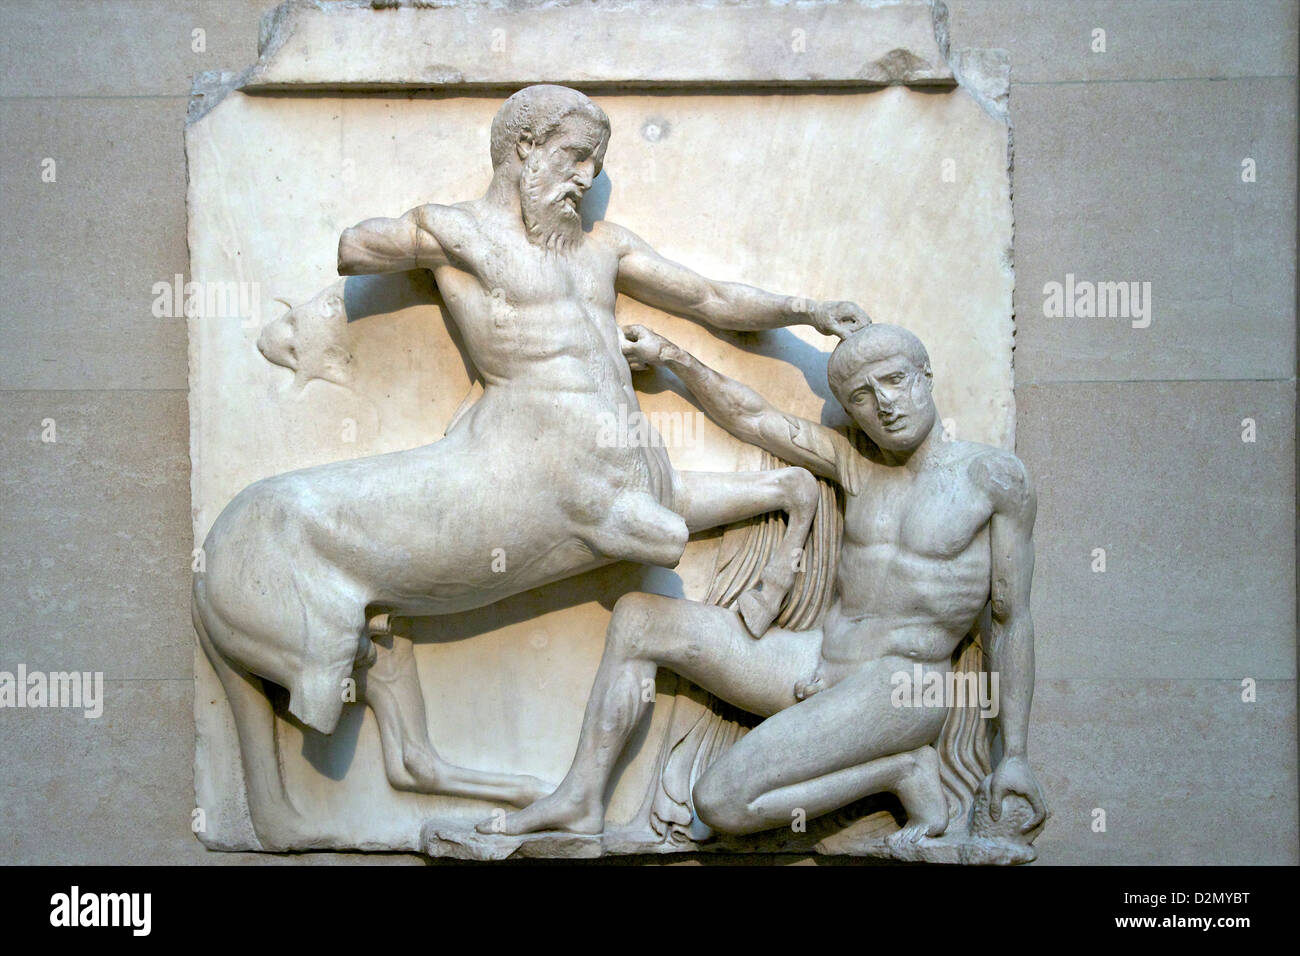 lapith fighting a centaur 27 parthenon sculpture: centaur and lapith marble relief, from the parthenon, athens, greece around 440 bc around 1800, lord elgin, the british ambassador to the ottoman empire, removed some of the sculptures from the ruins of the parthenon in athens, and a few years later put them on public show in london.